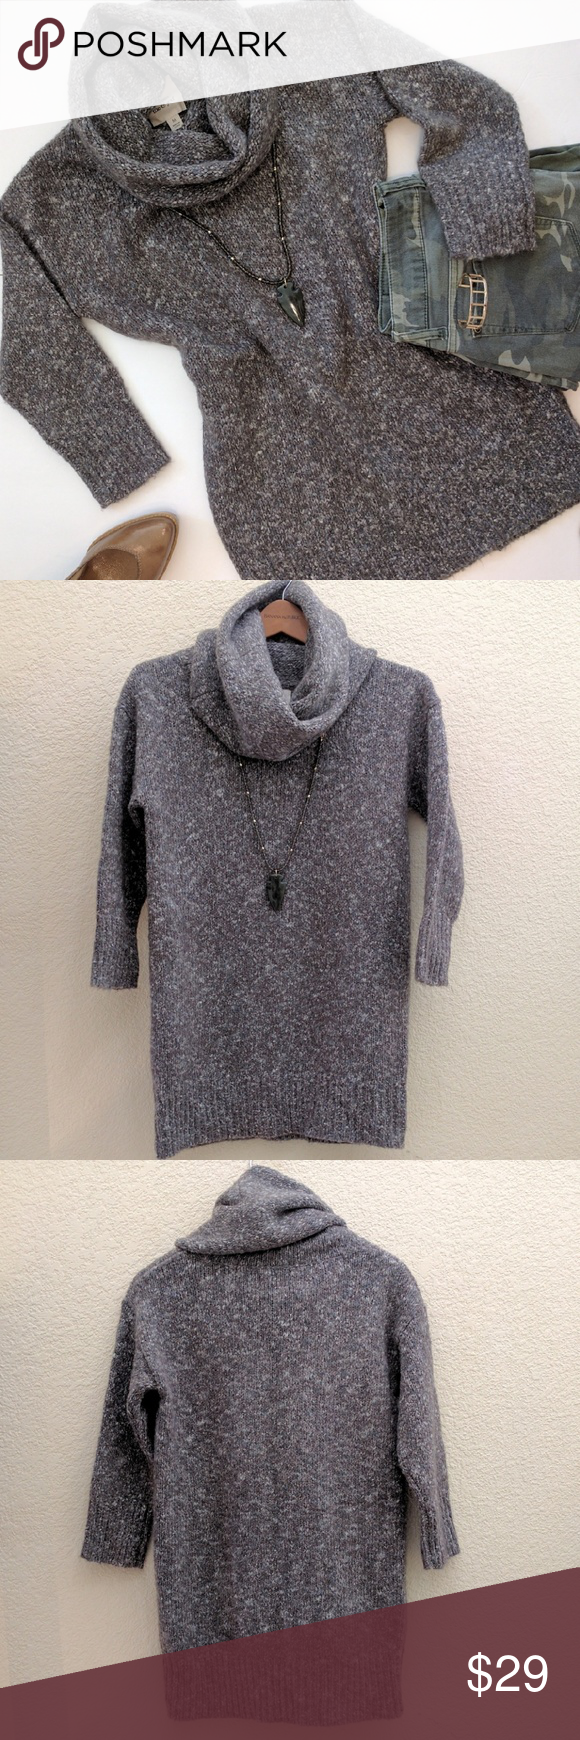 Between Me & You Cozy Cowl Neck Sweater Size M This tunic length ...